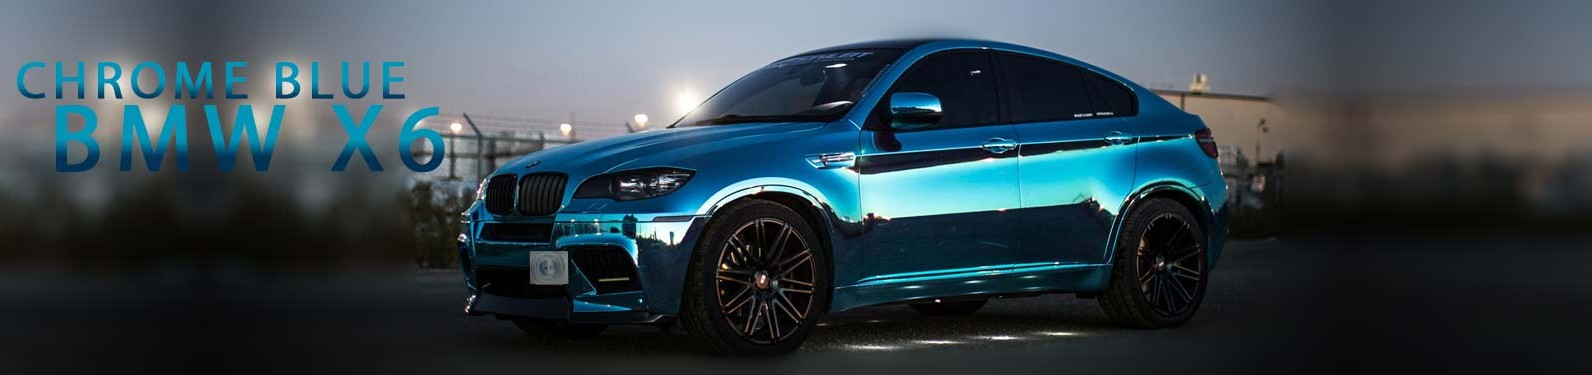 Chrome Blue BMW X6